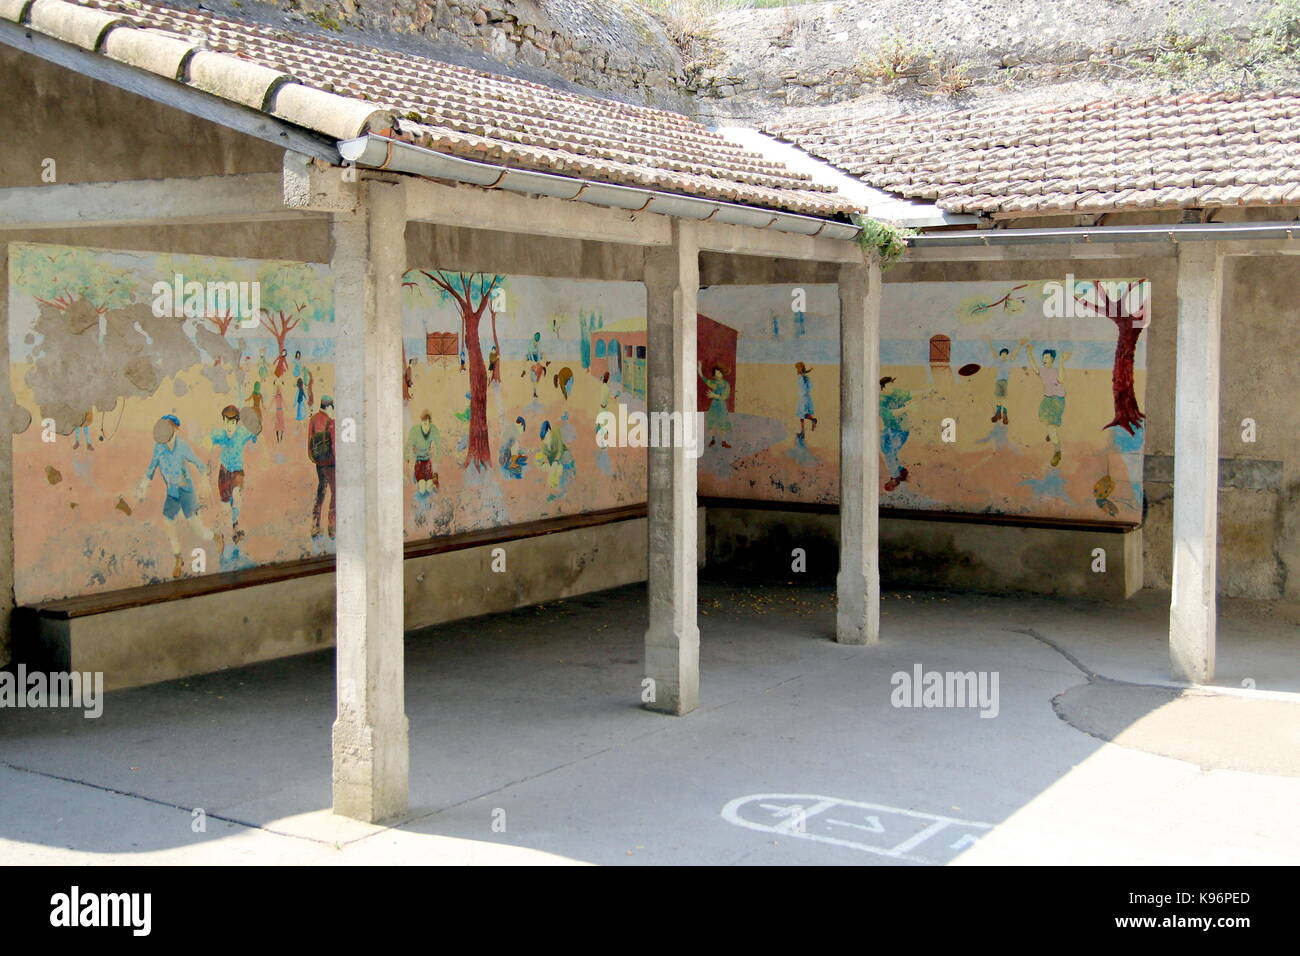 School playground wall mural stock photos school playground wall retro vintage styled mural or wall painting in a school yard or playground stock image amipublicfo Gallery